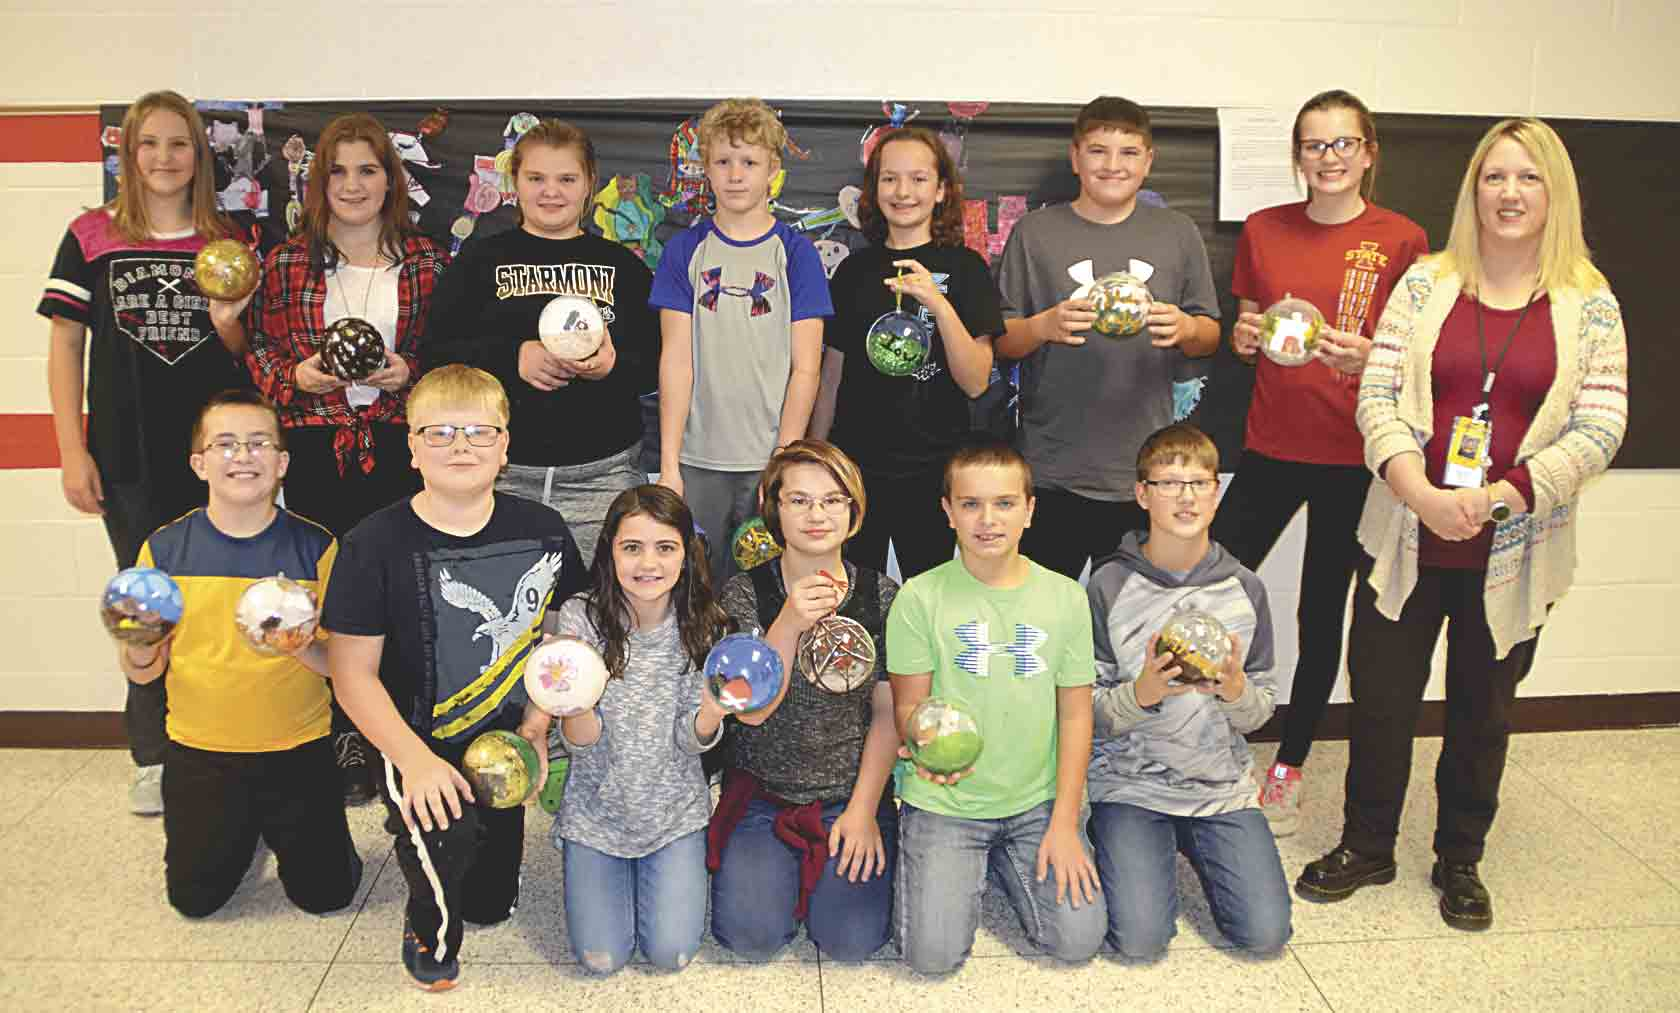 Students in Starmont Middle School's STEM Excellence in Leadership Program created 24 Christmas tree ornaments that will hang on smaller Christmas trees around the National Christmas Tree in President's Park in Washington, D.C. Starmont was one of 56 schools to be selected for...